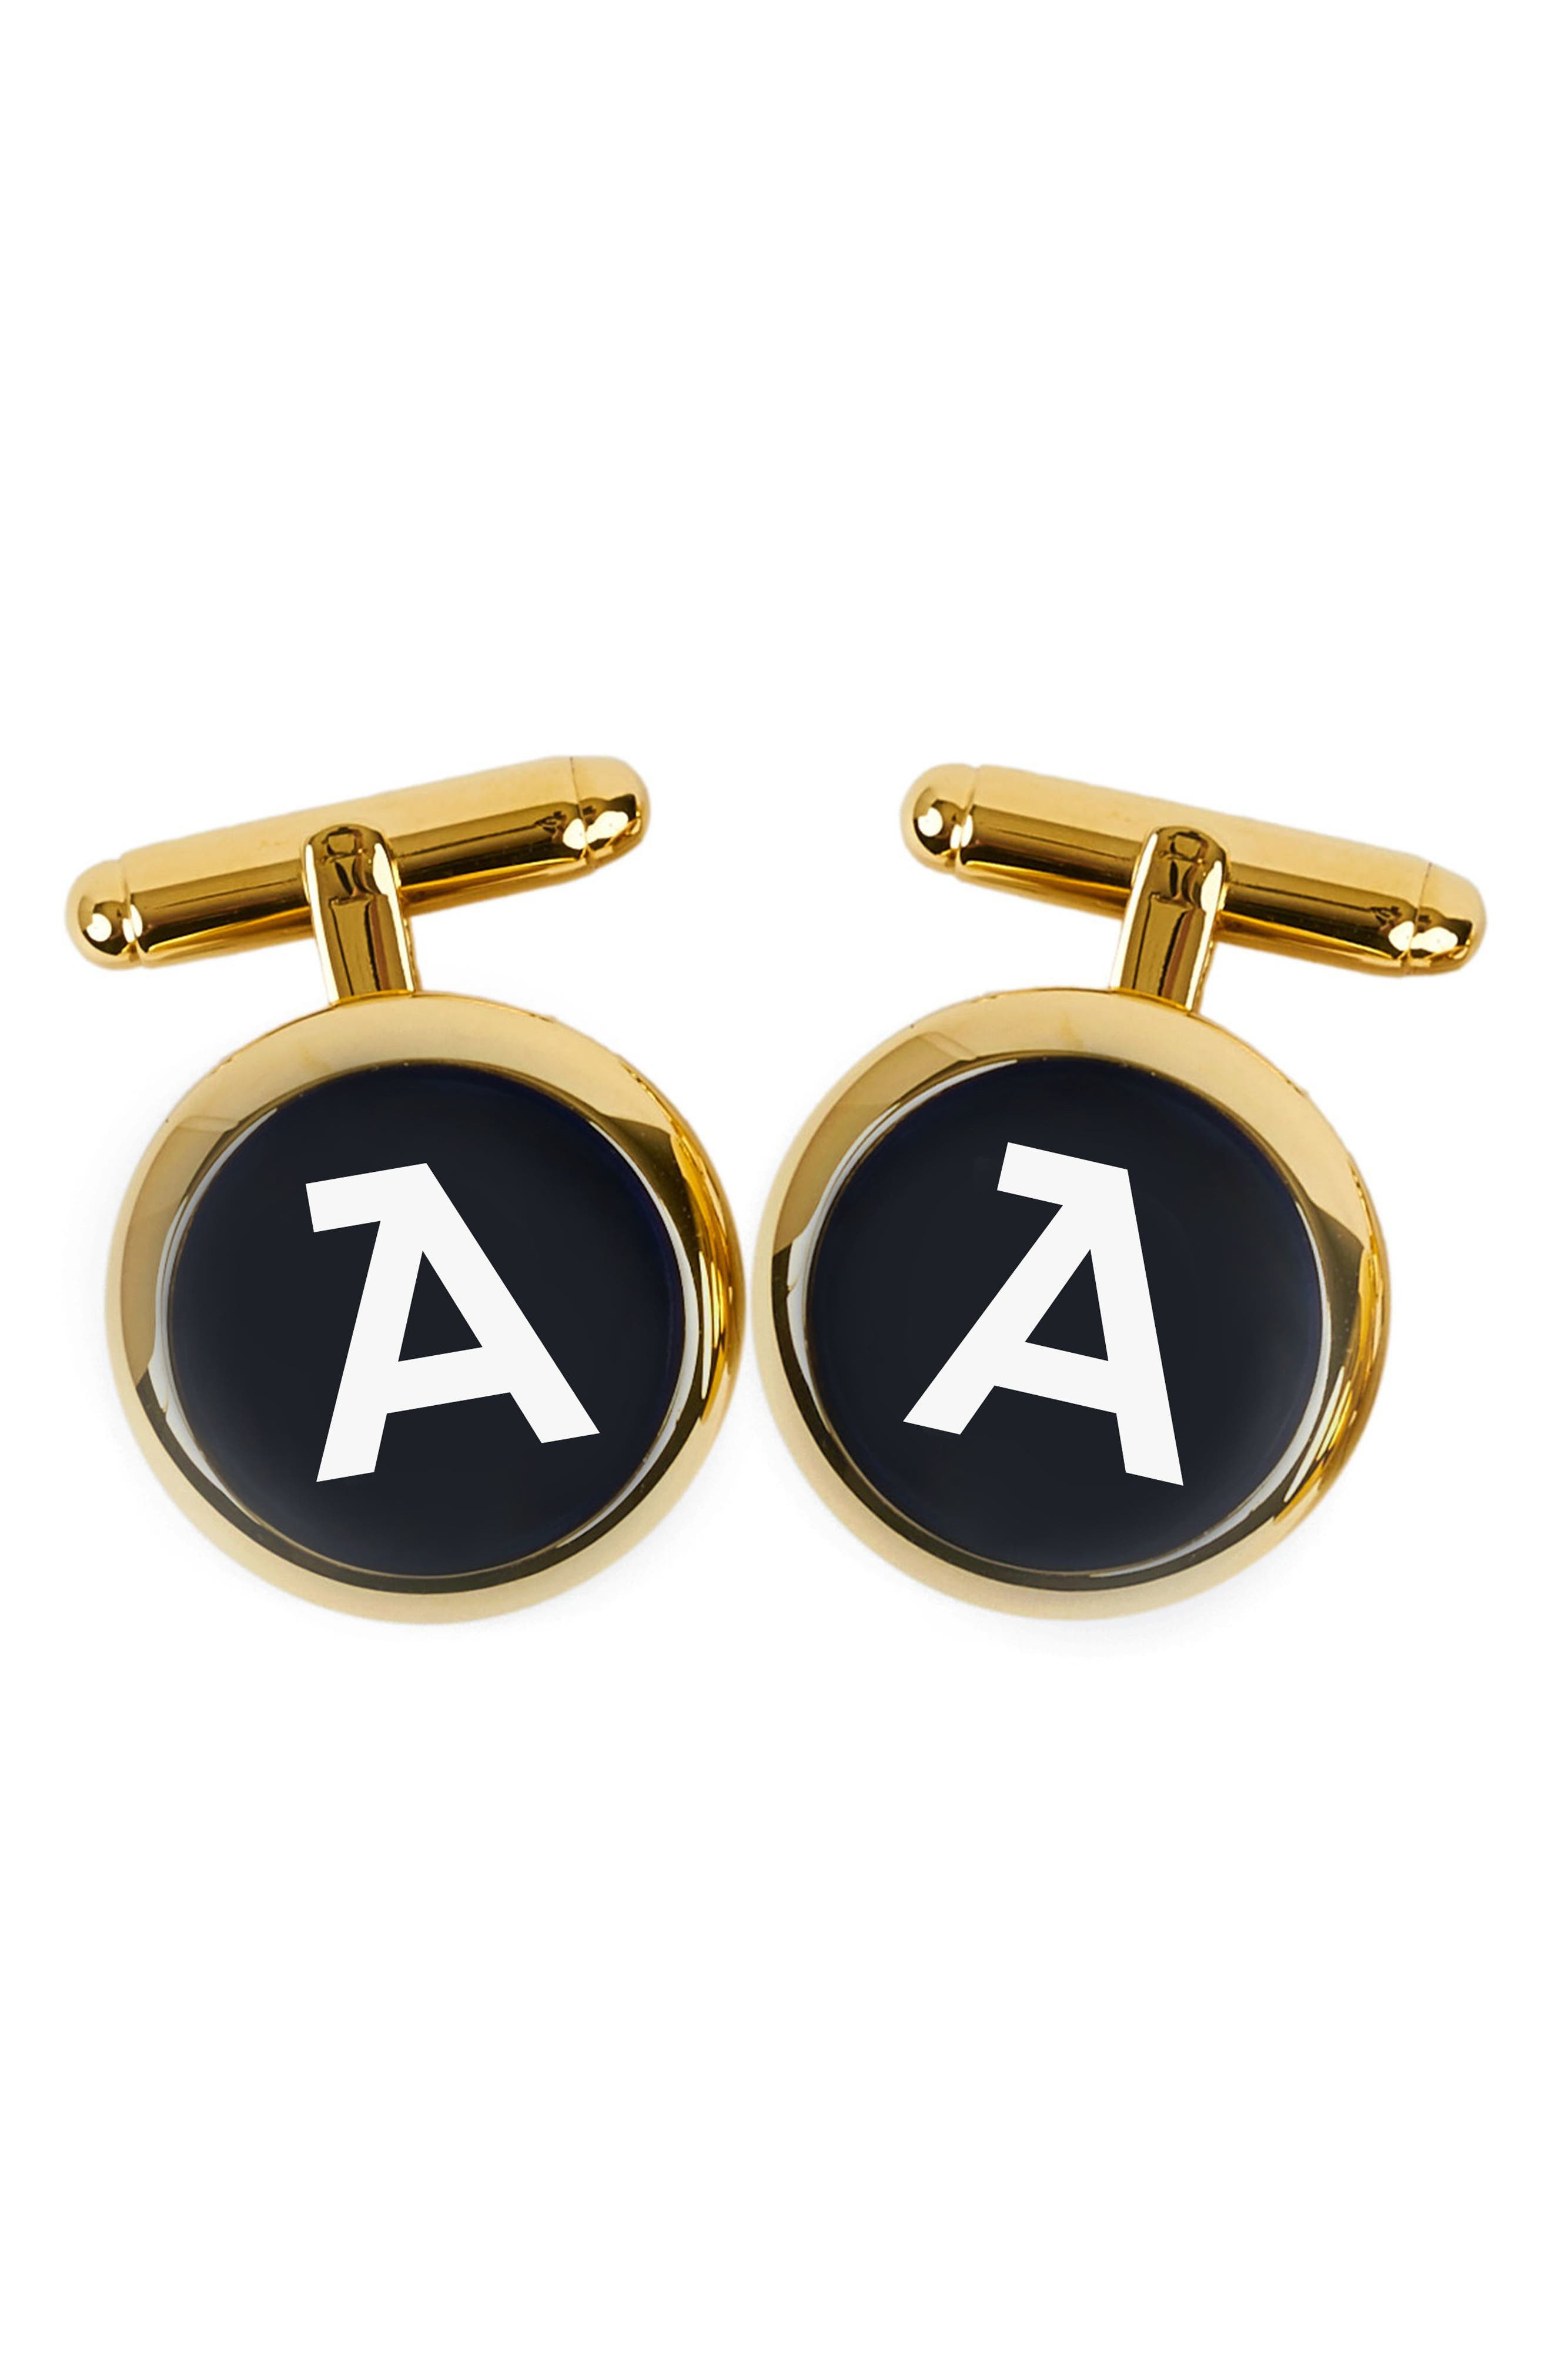 Brooklyn Initial Cuff Links,                         Main,                         color, 710